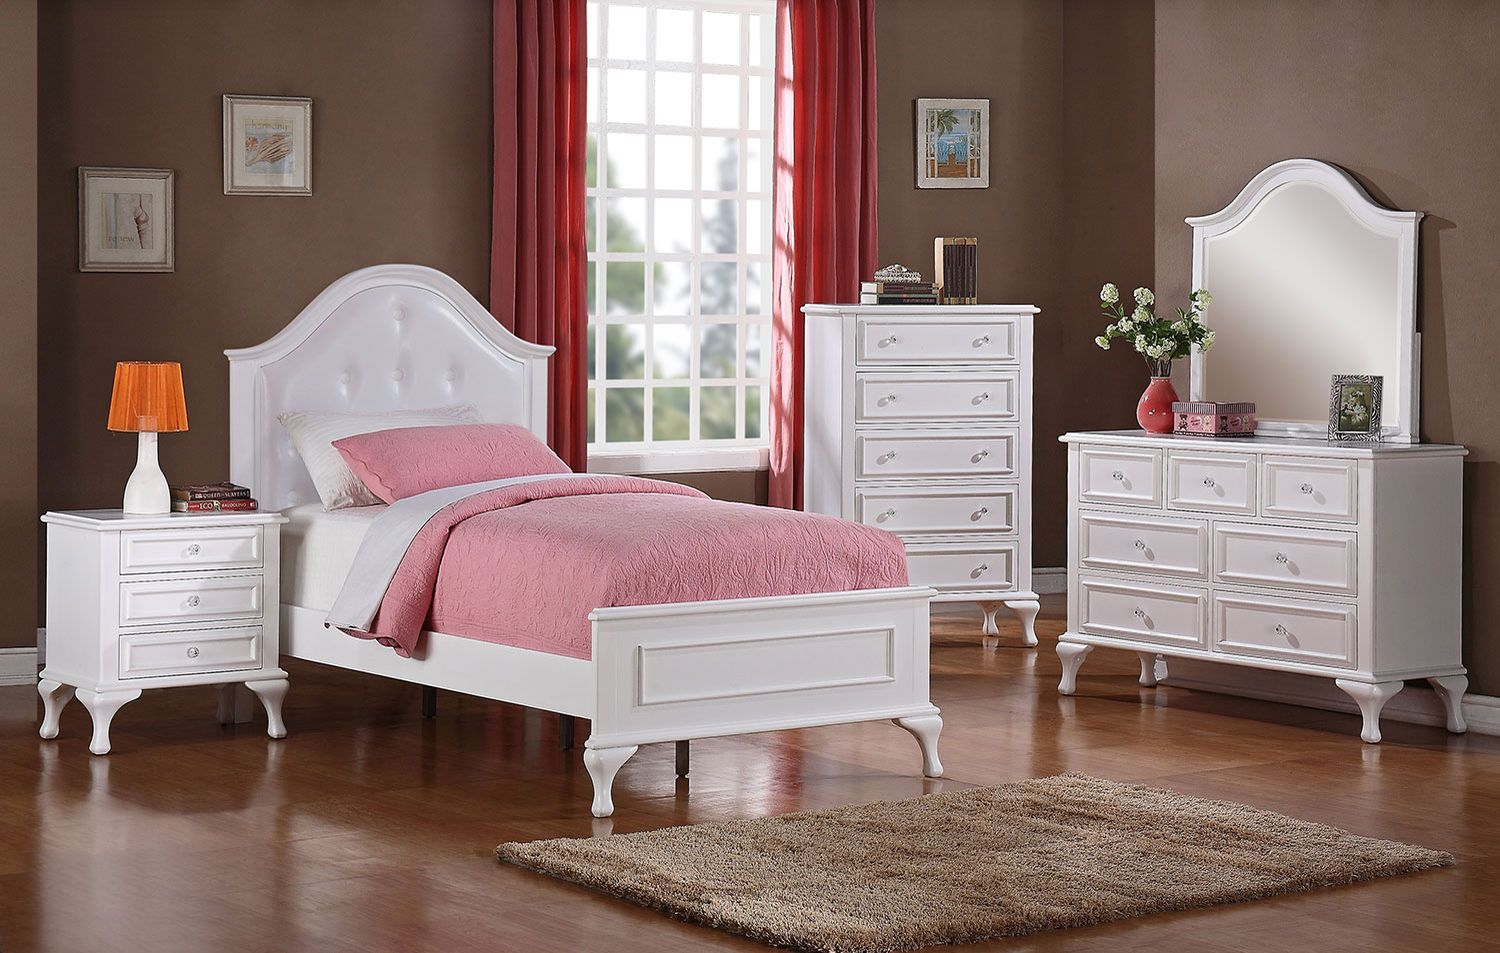 Riva 4-Piece Twin Bedroom Set with Dresser, Mirror and Nightstand - White